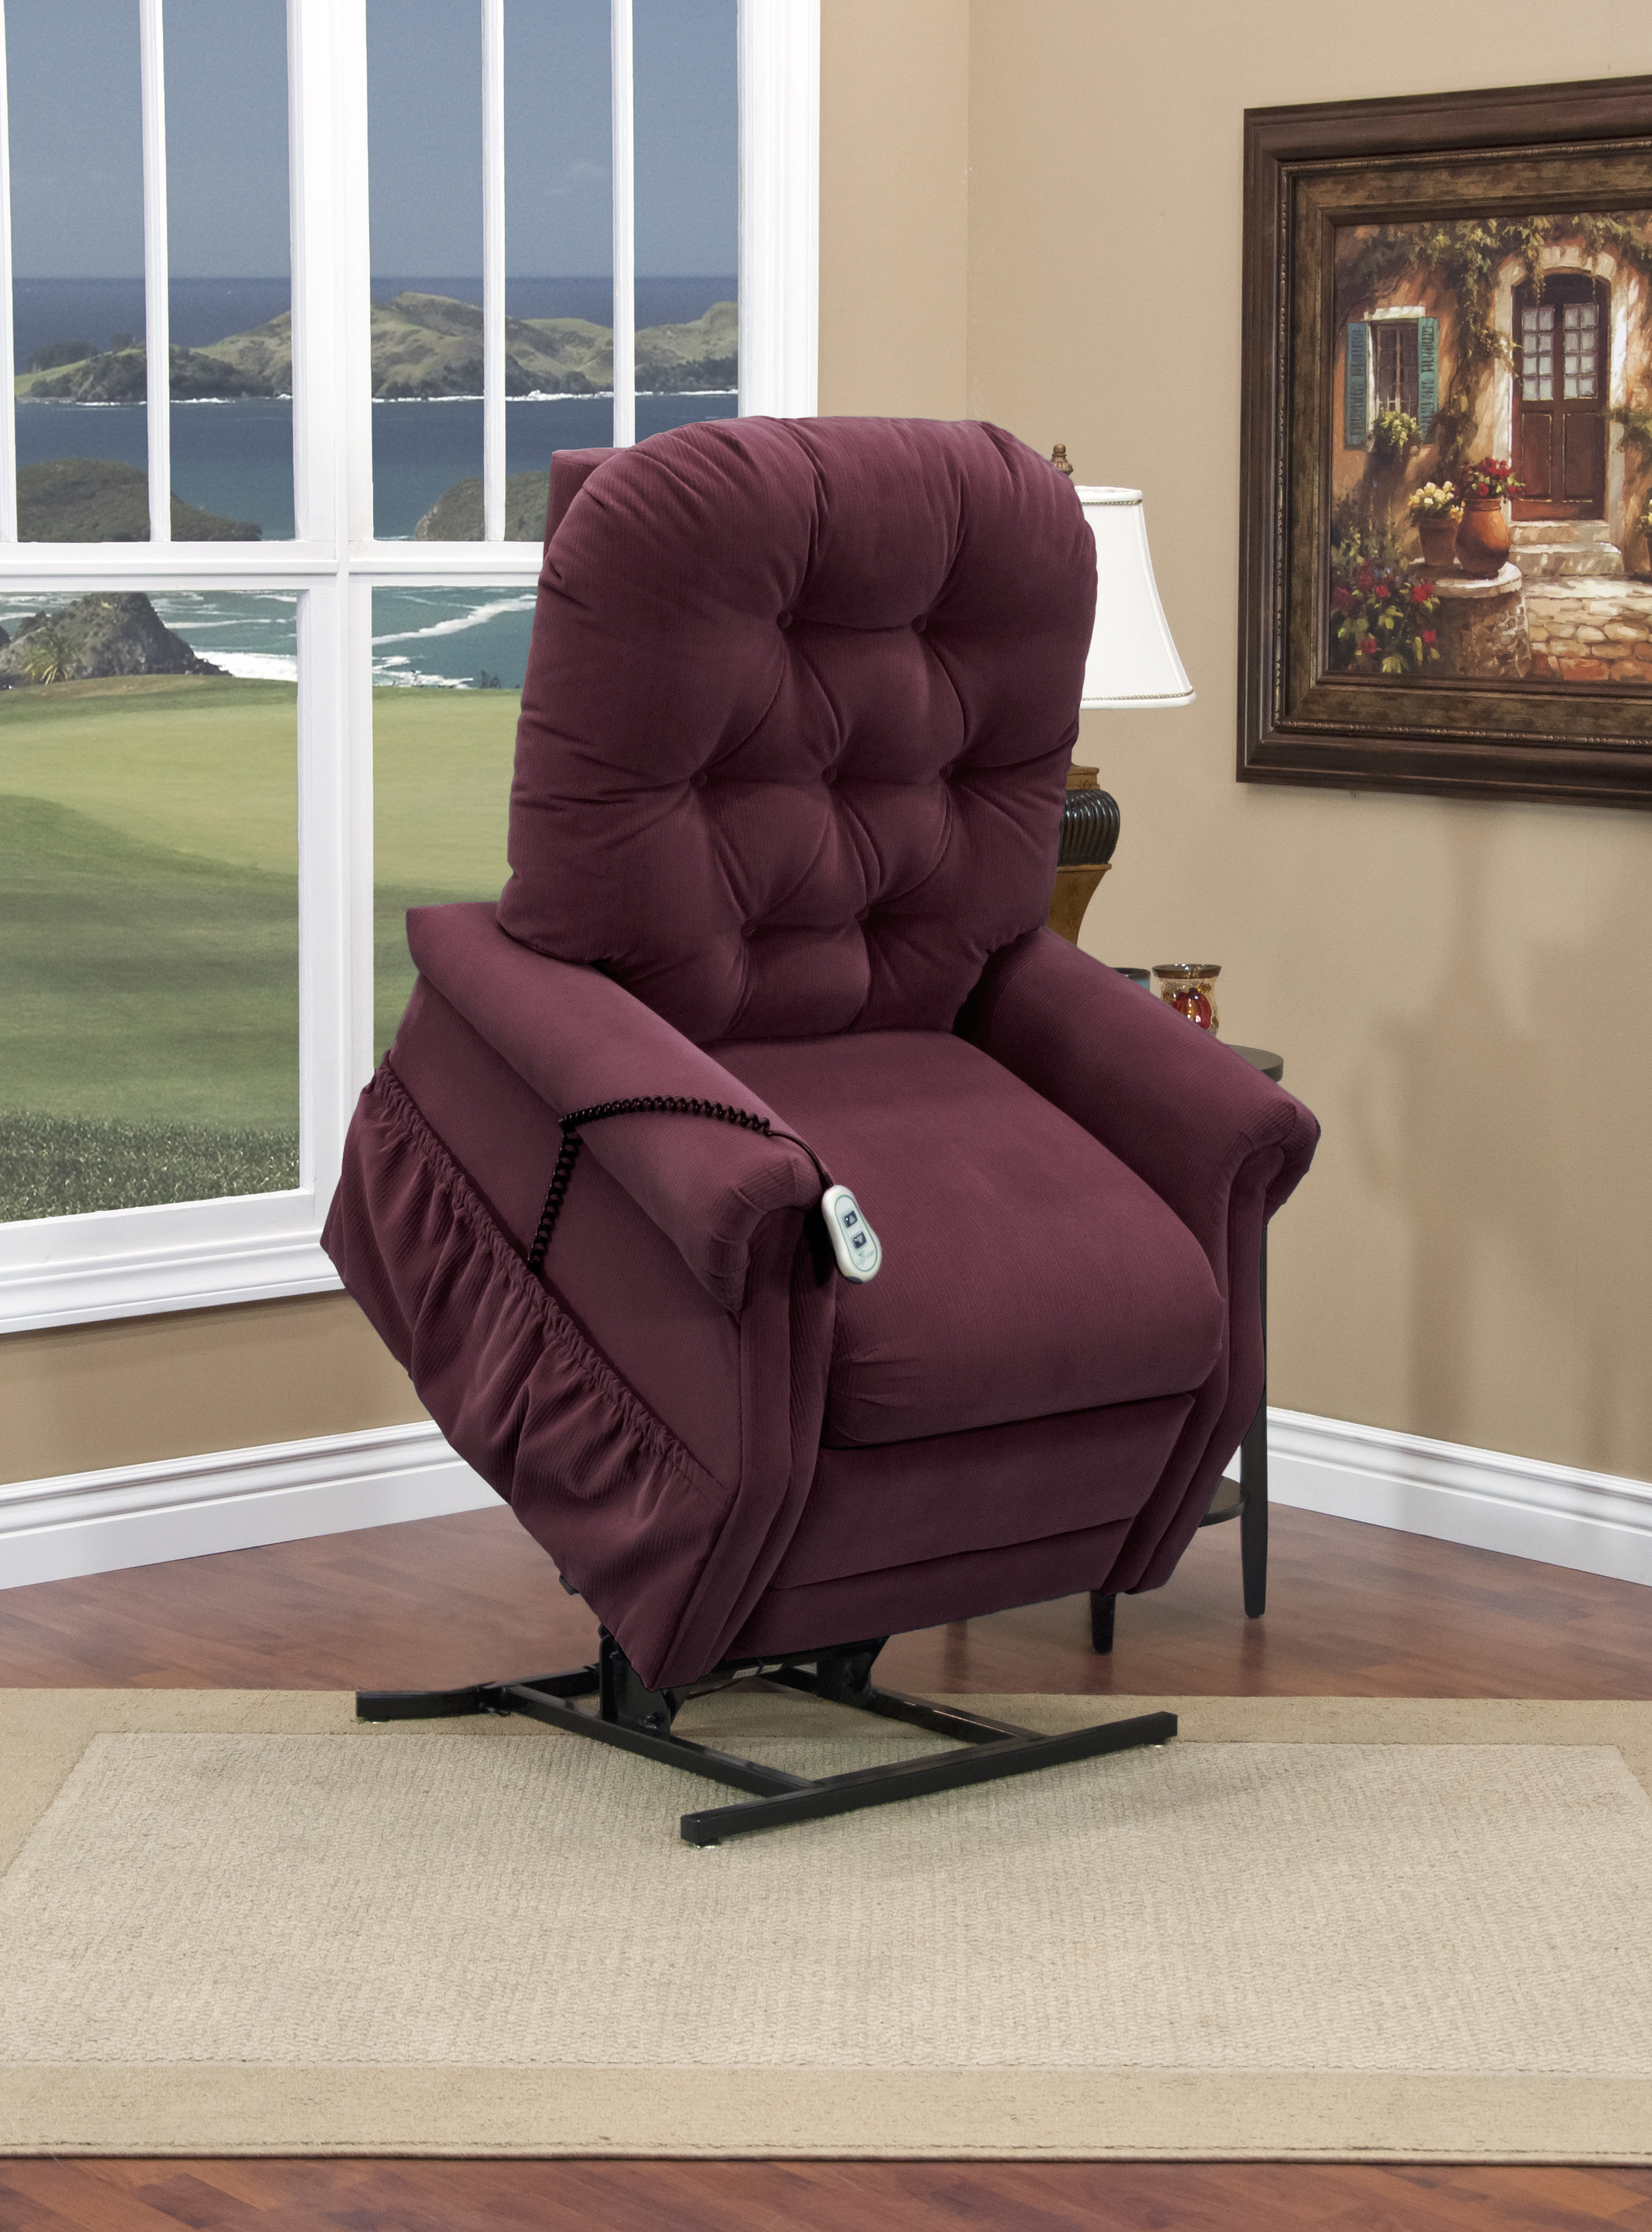 platinum powerreclinexr z of kingston pinnacle chairs la ottawa power boy lift chair luxury